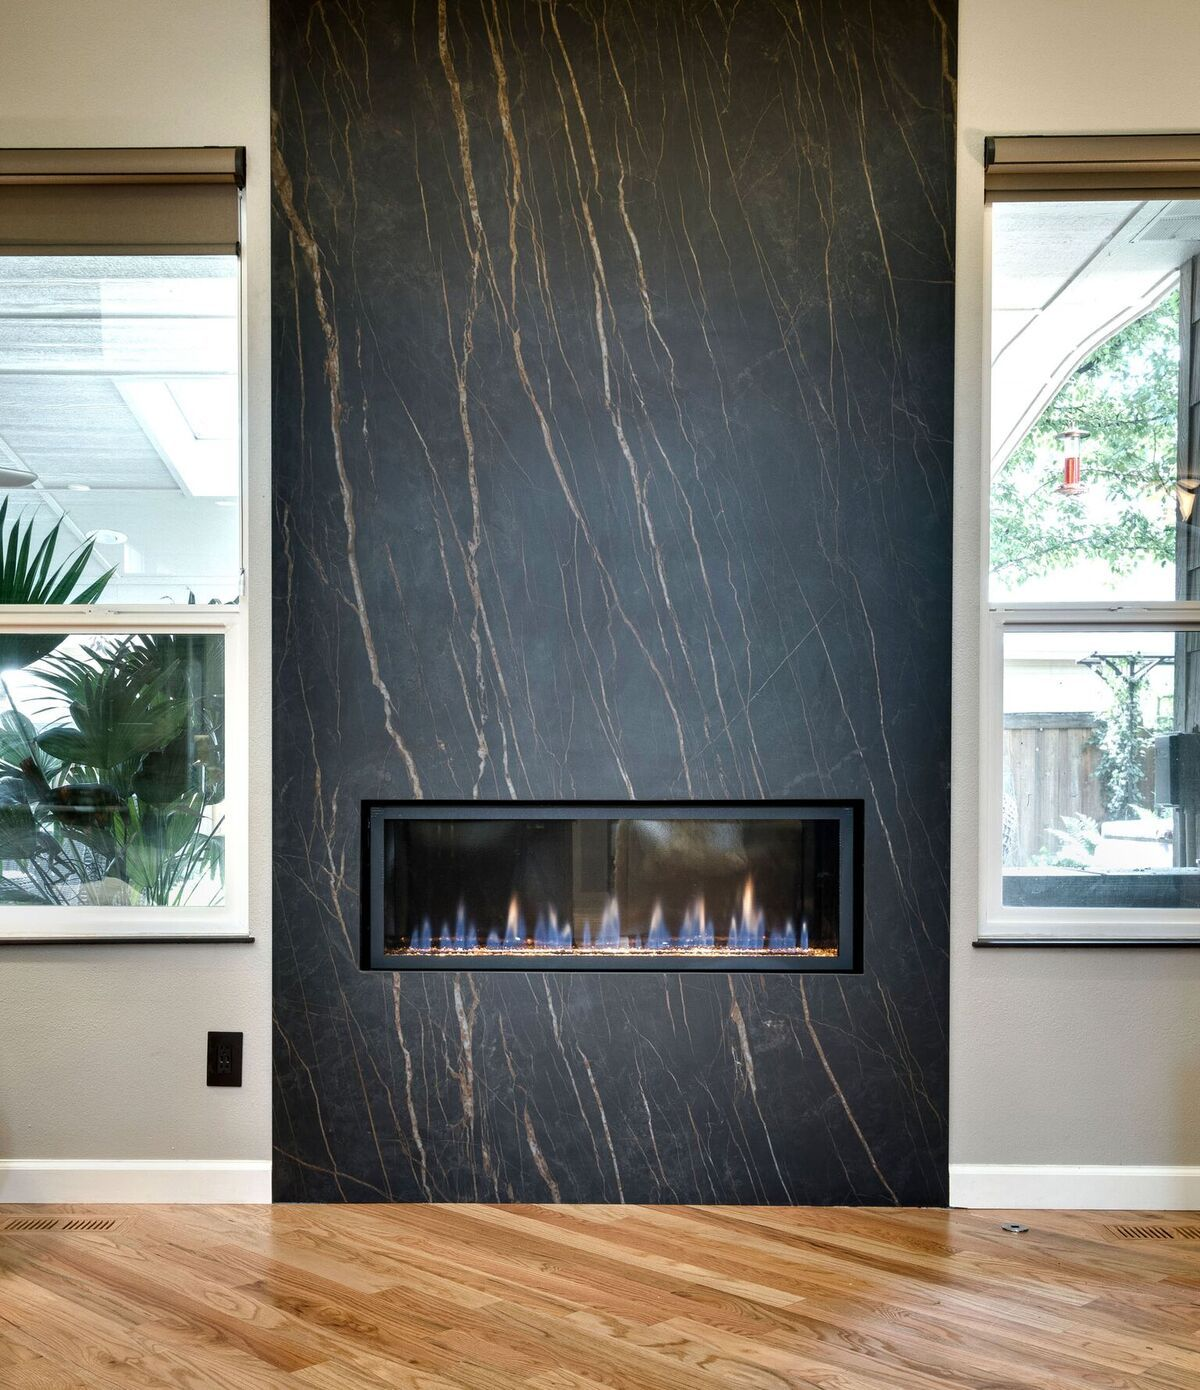 Laminam Slab Porcelain Cava Noir Desir 12mm Matte Fireplace Feature Wall Marble Fireplace Surround Contemporary Fireplace